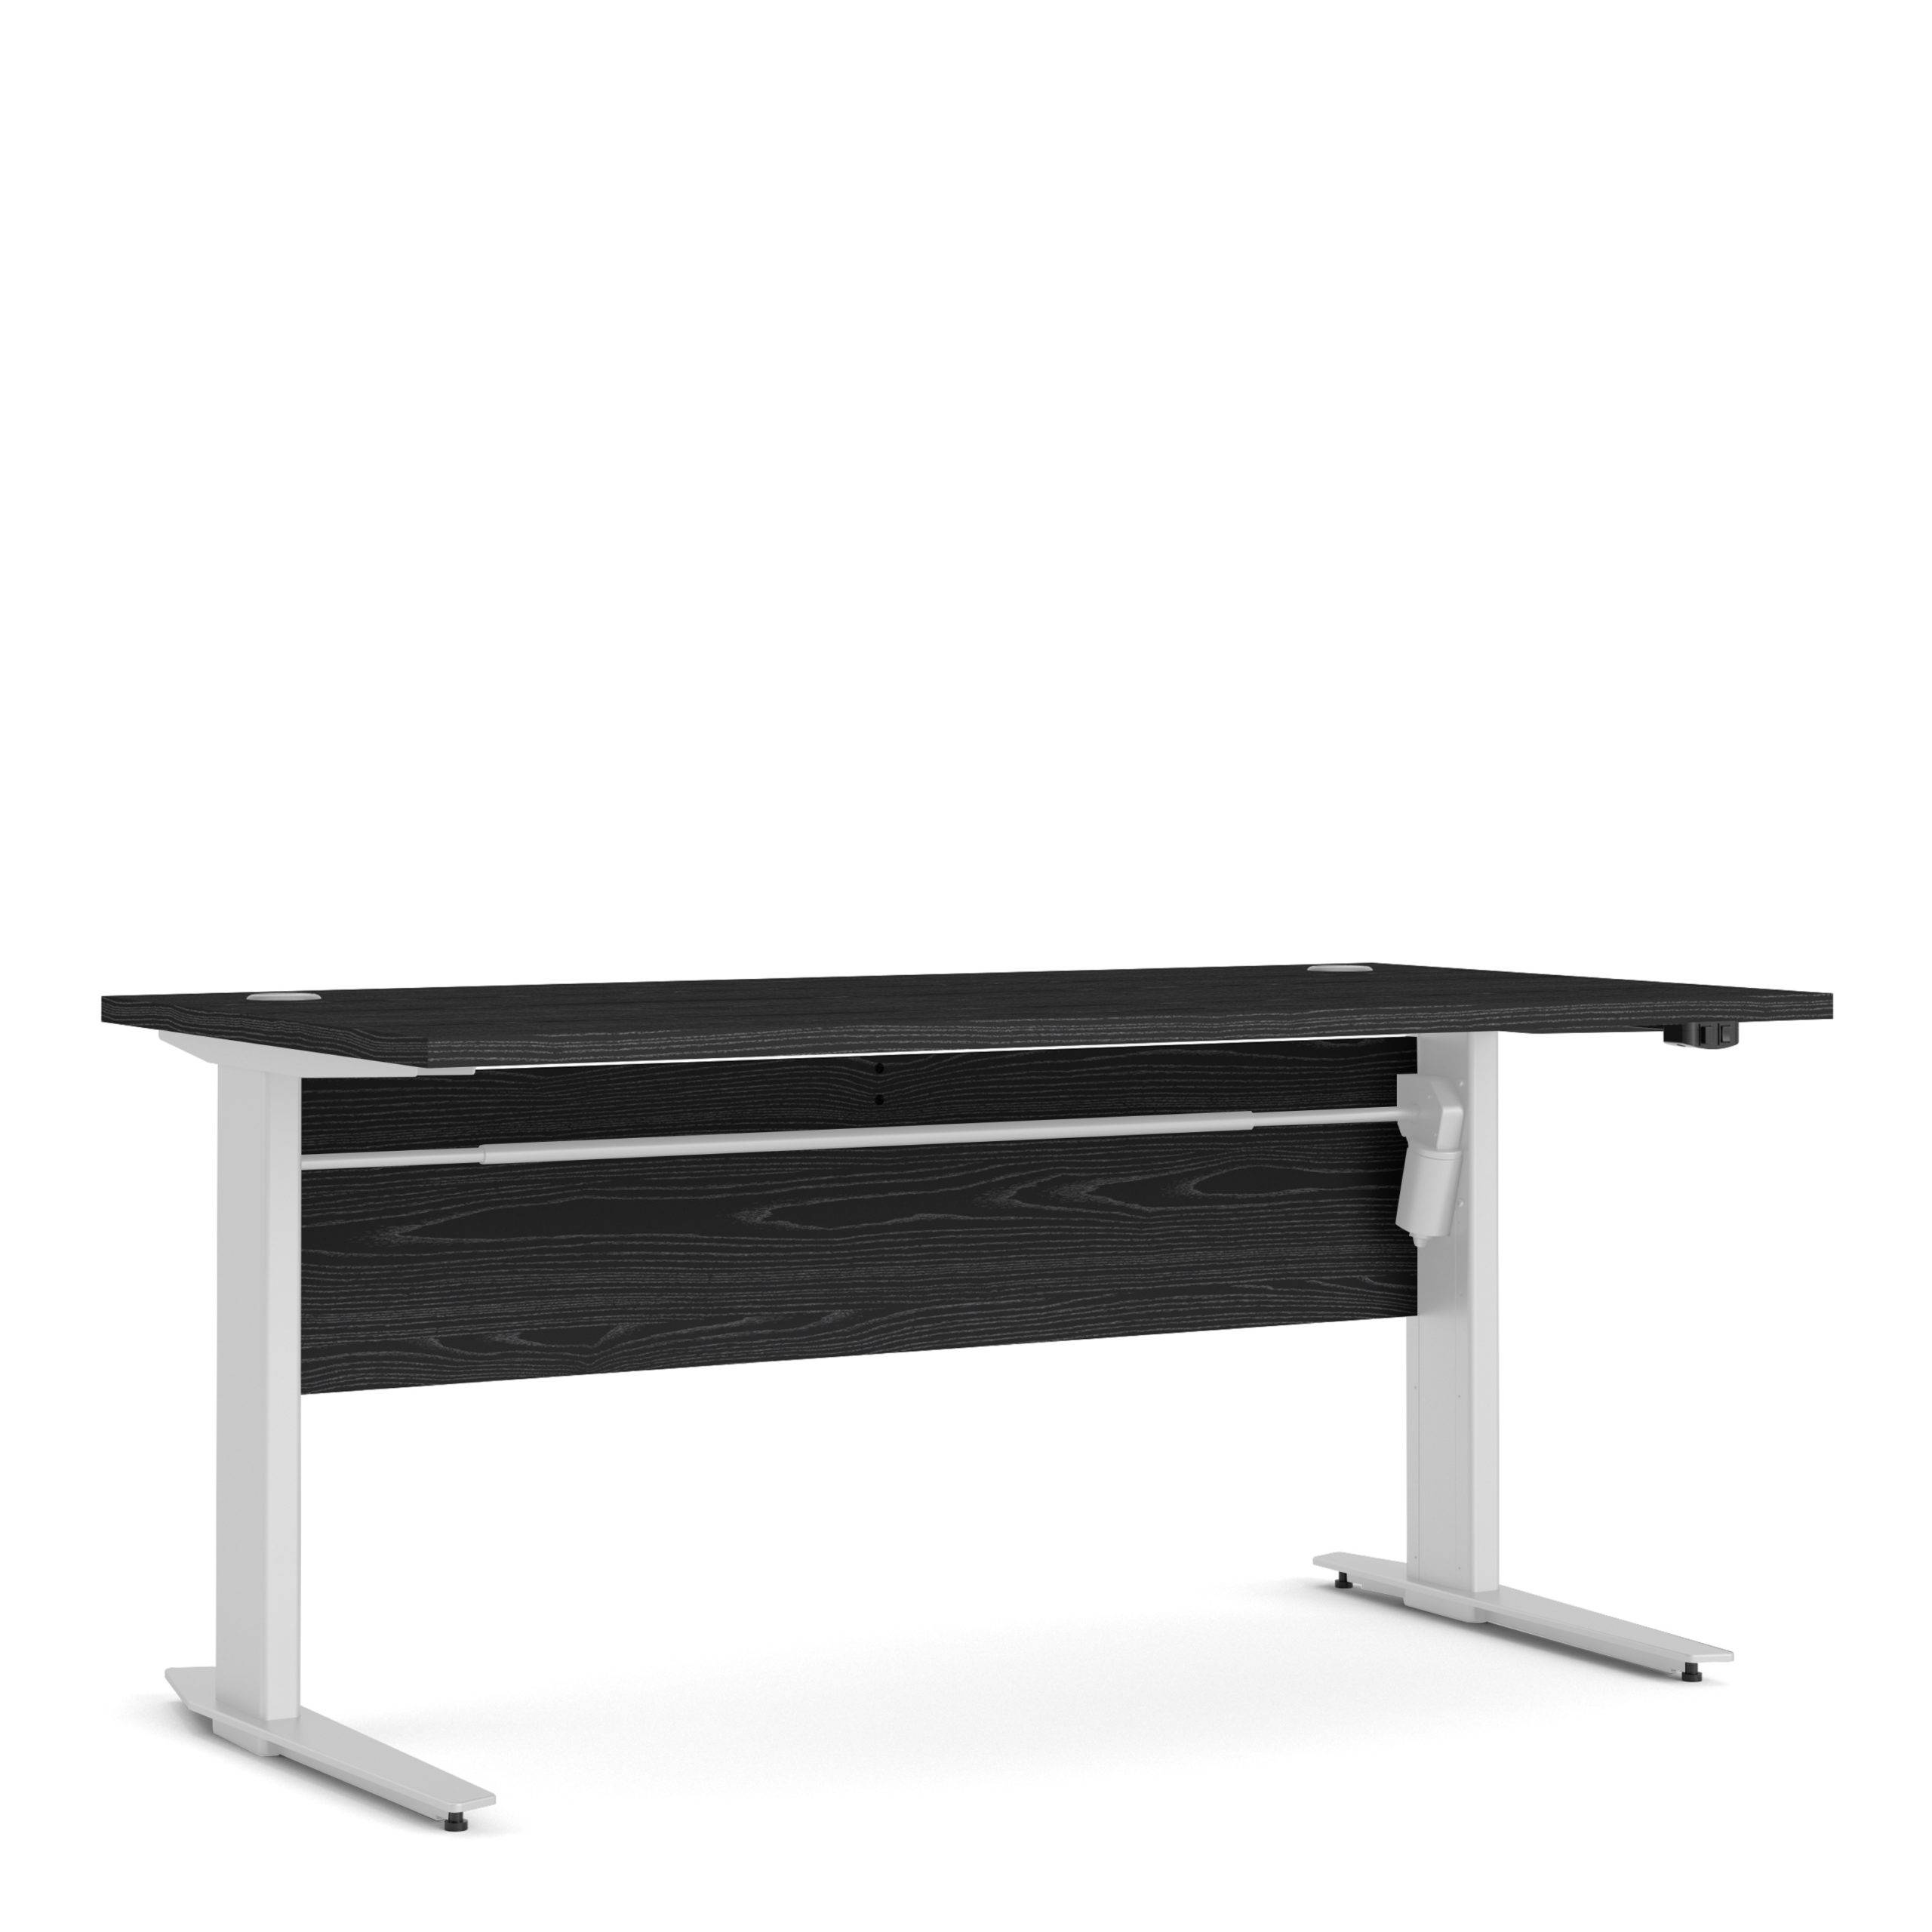 Kansas Desk 150 cm in Black Woodgrain   Height Adjustable Legs   Electric Control in White   Self Assembly